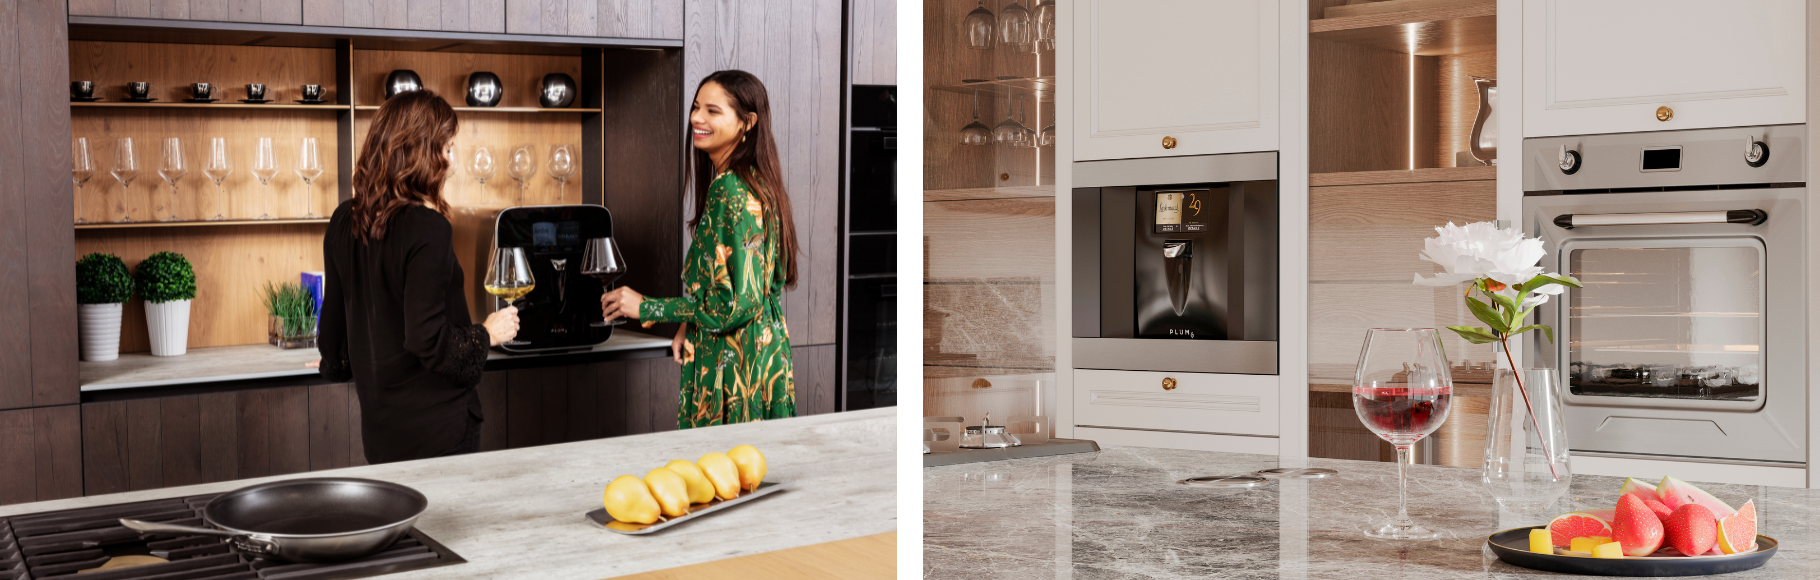 Plum wine dispenser on the kitchen countertop and built-in, with two women smiling and drinking wine